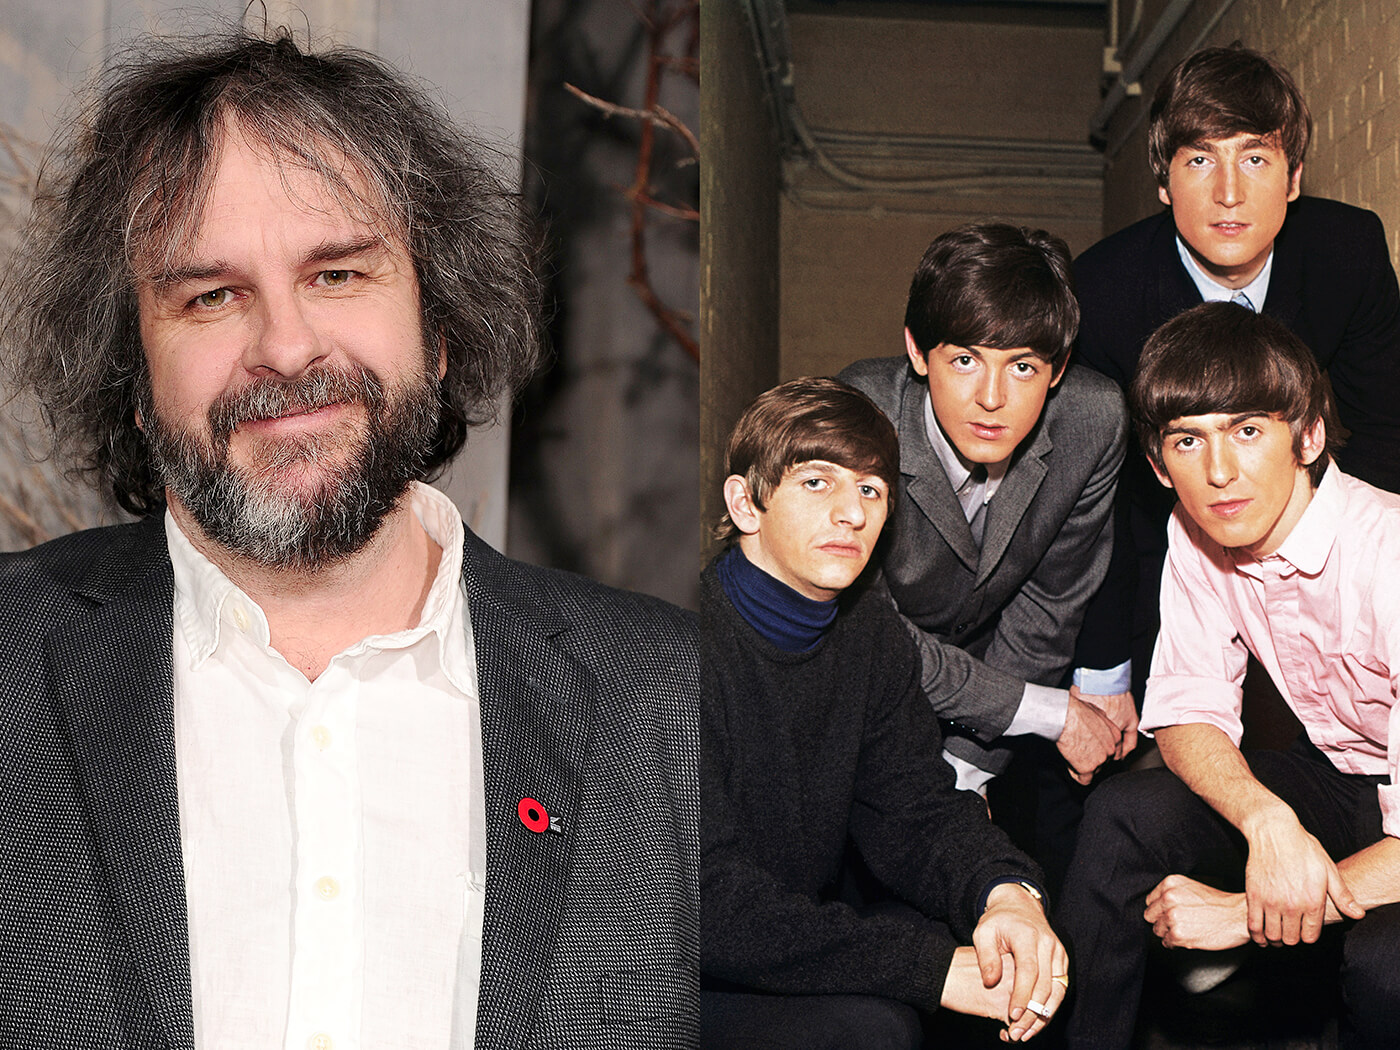 Peter Jackson's Documentary The Beatles: Get Back update, Cast, Trailer, Plot and All You Need To Know